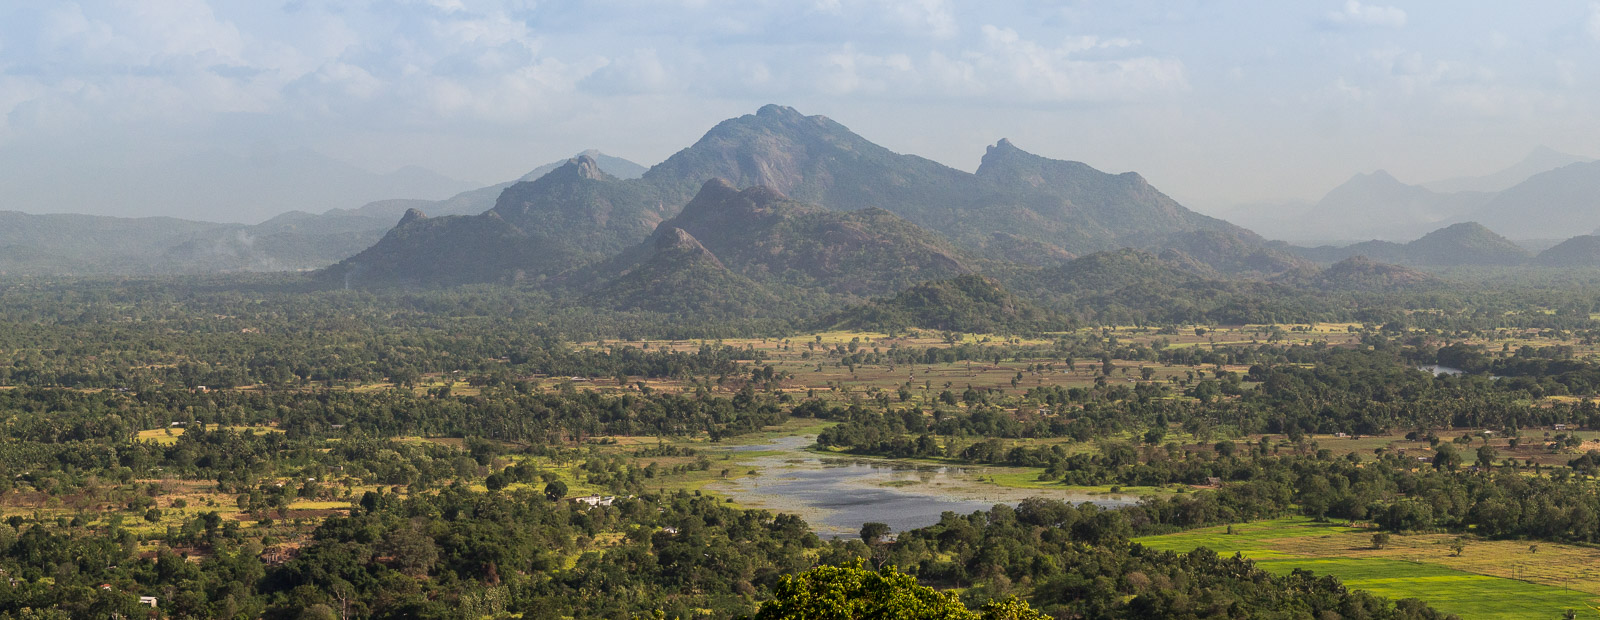 looking south from the summit of Sigiriya